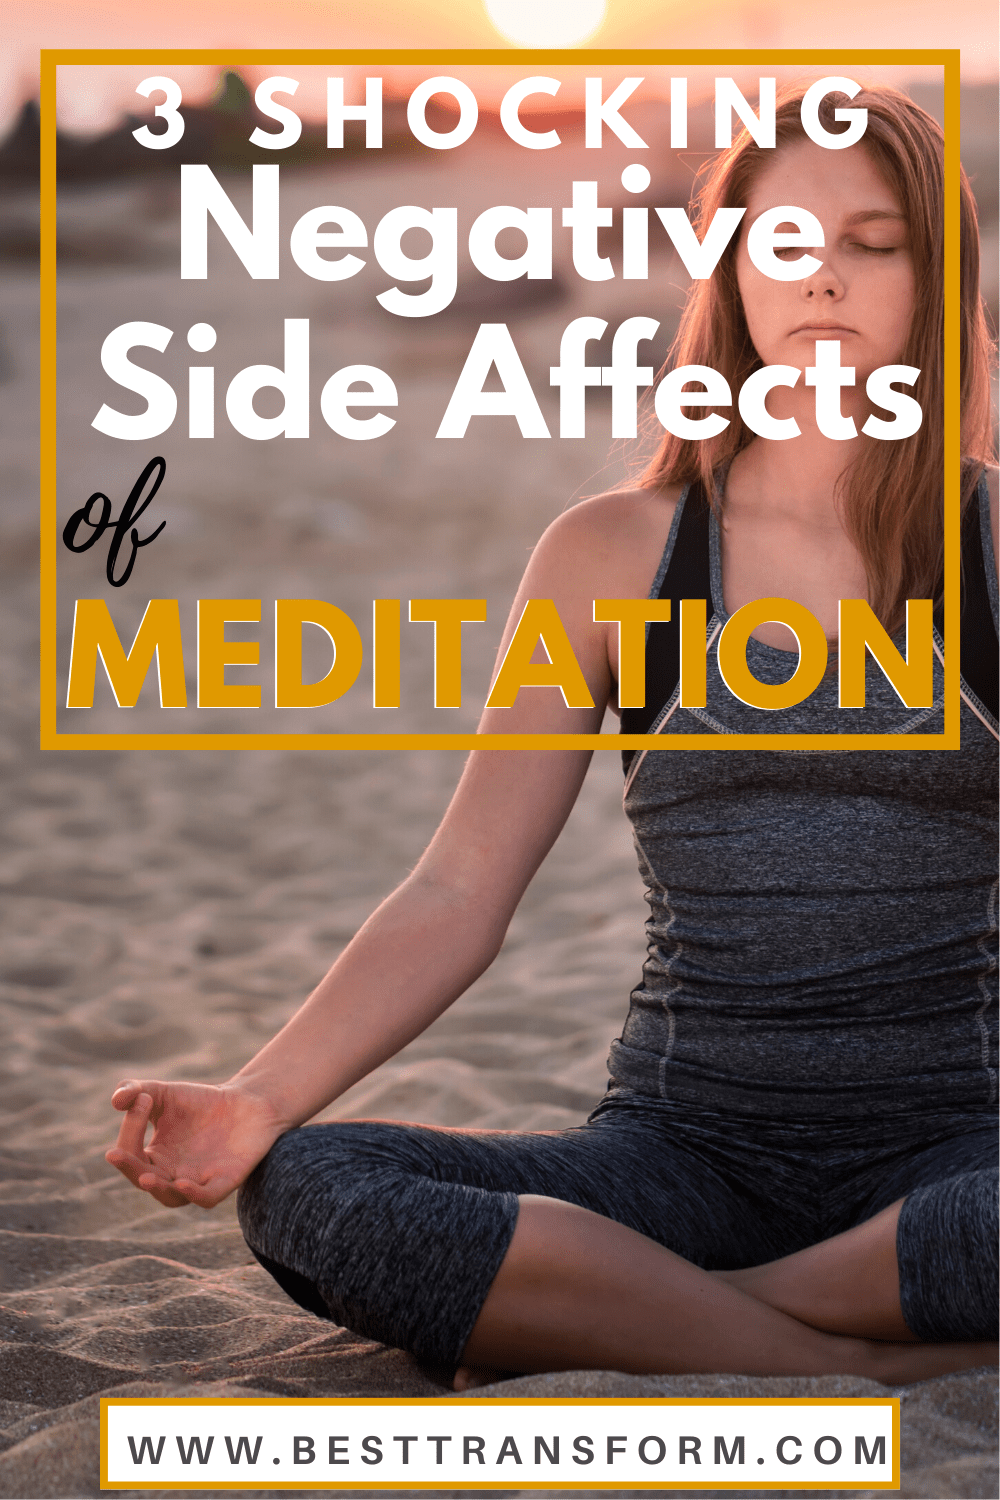 Meditation Negative Side Affects